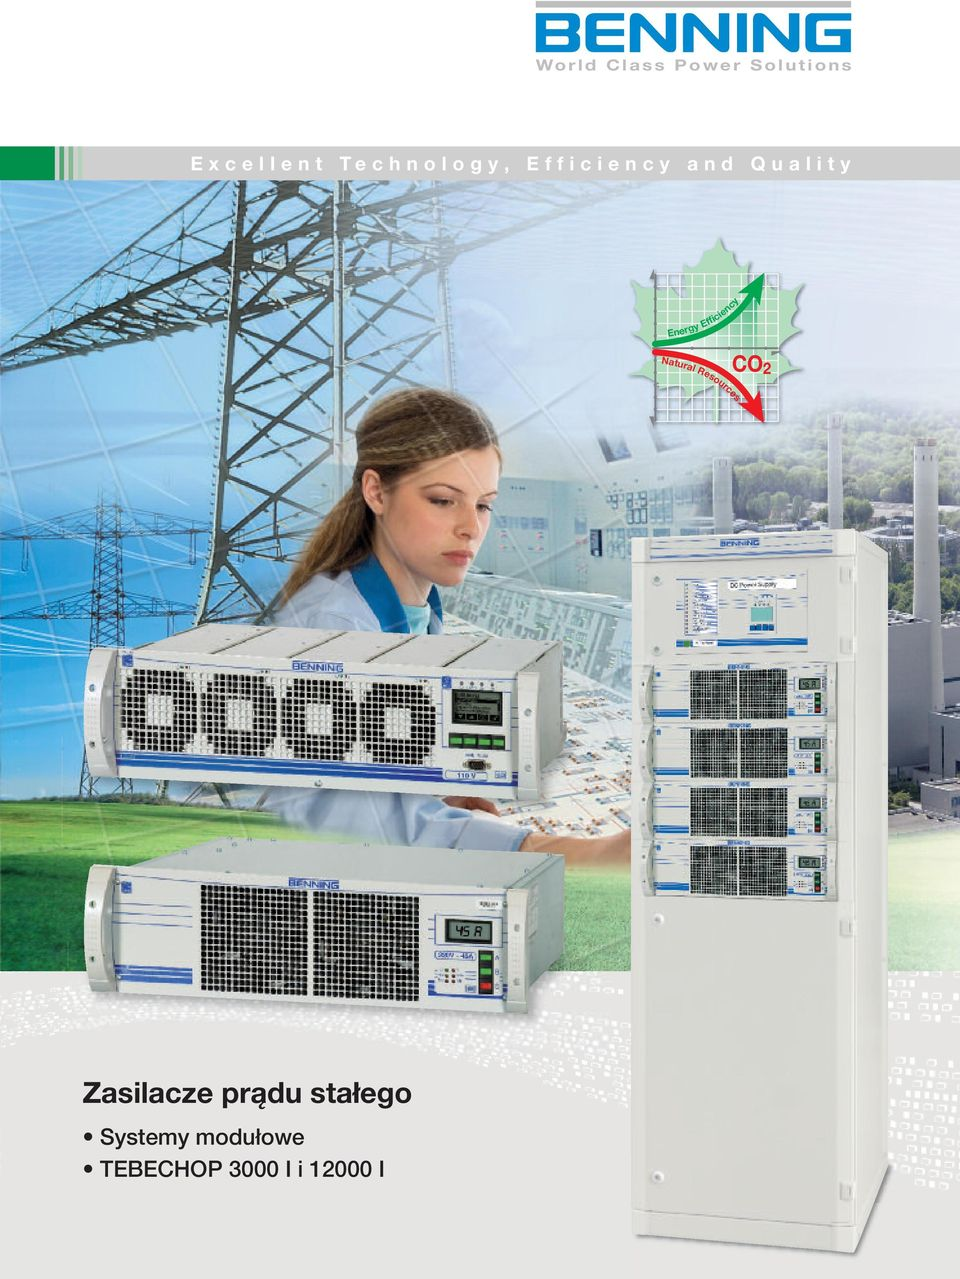 l i t y Energy Efficiency Natural Resources CO 2 Zasilacze